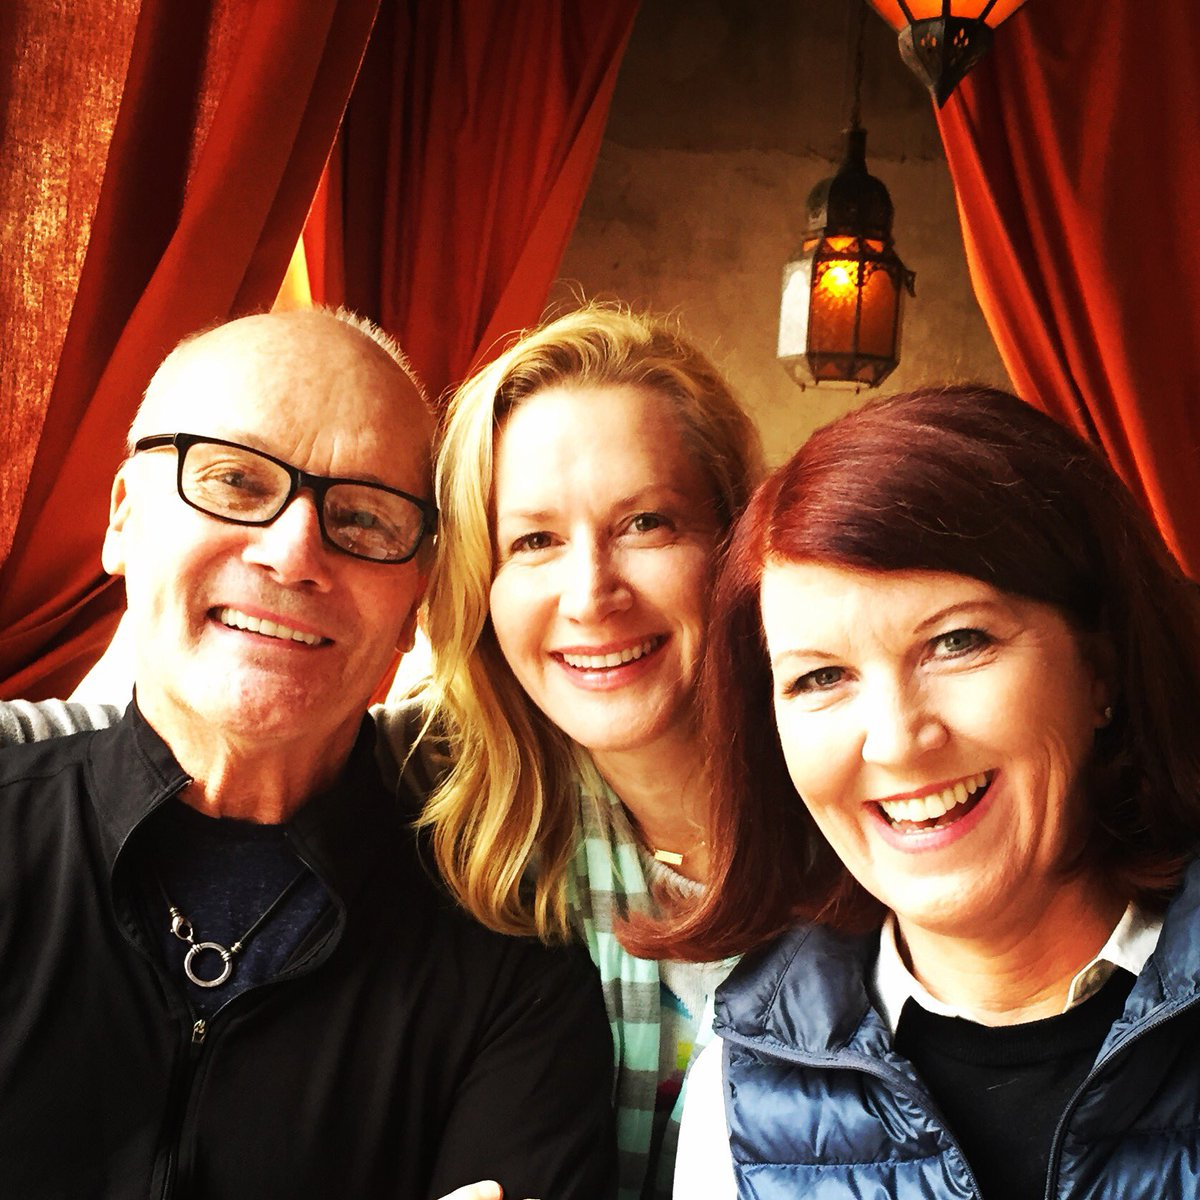 ...so this happened. #miniofficereunion I miss these crazy people. Xo @angelakinsey @creedbratton https://t.co/RBHfWIOFFv